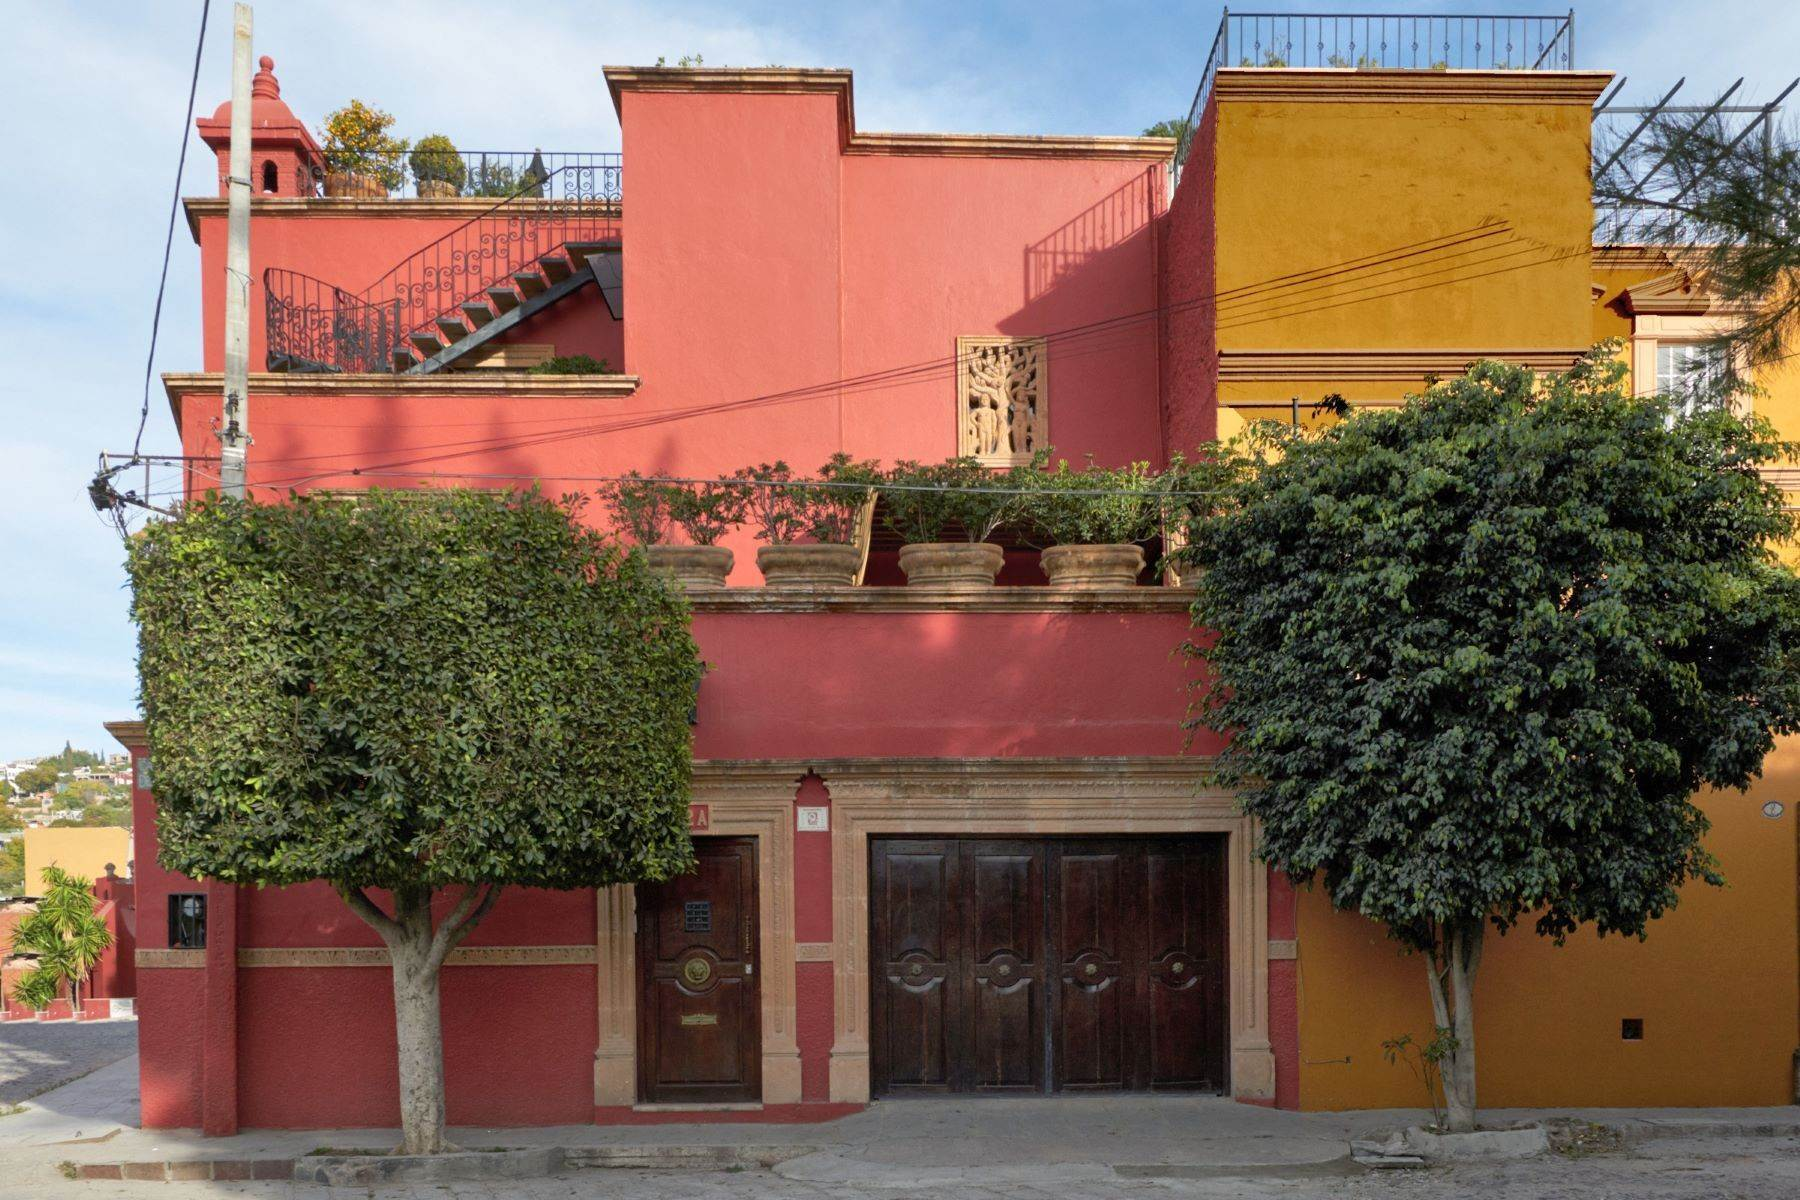 Single Family Homes for Sale at Callejón del Cardo 2A San Miguel De Allende, Guanajuato 37700 Mexico